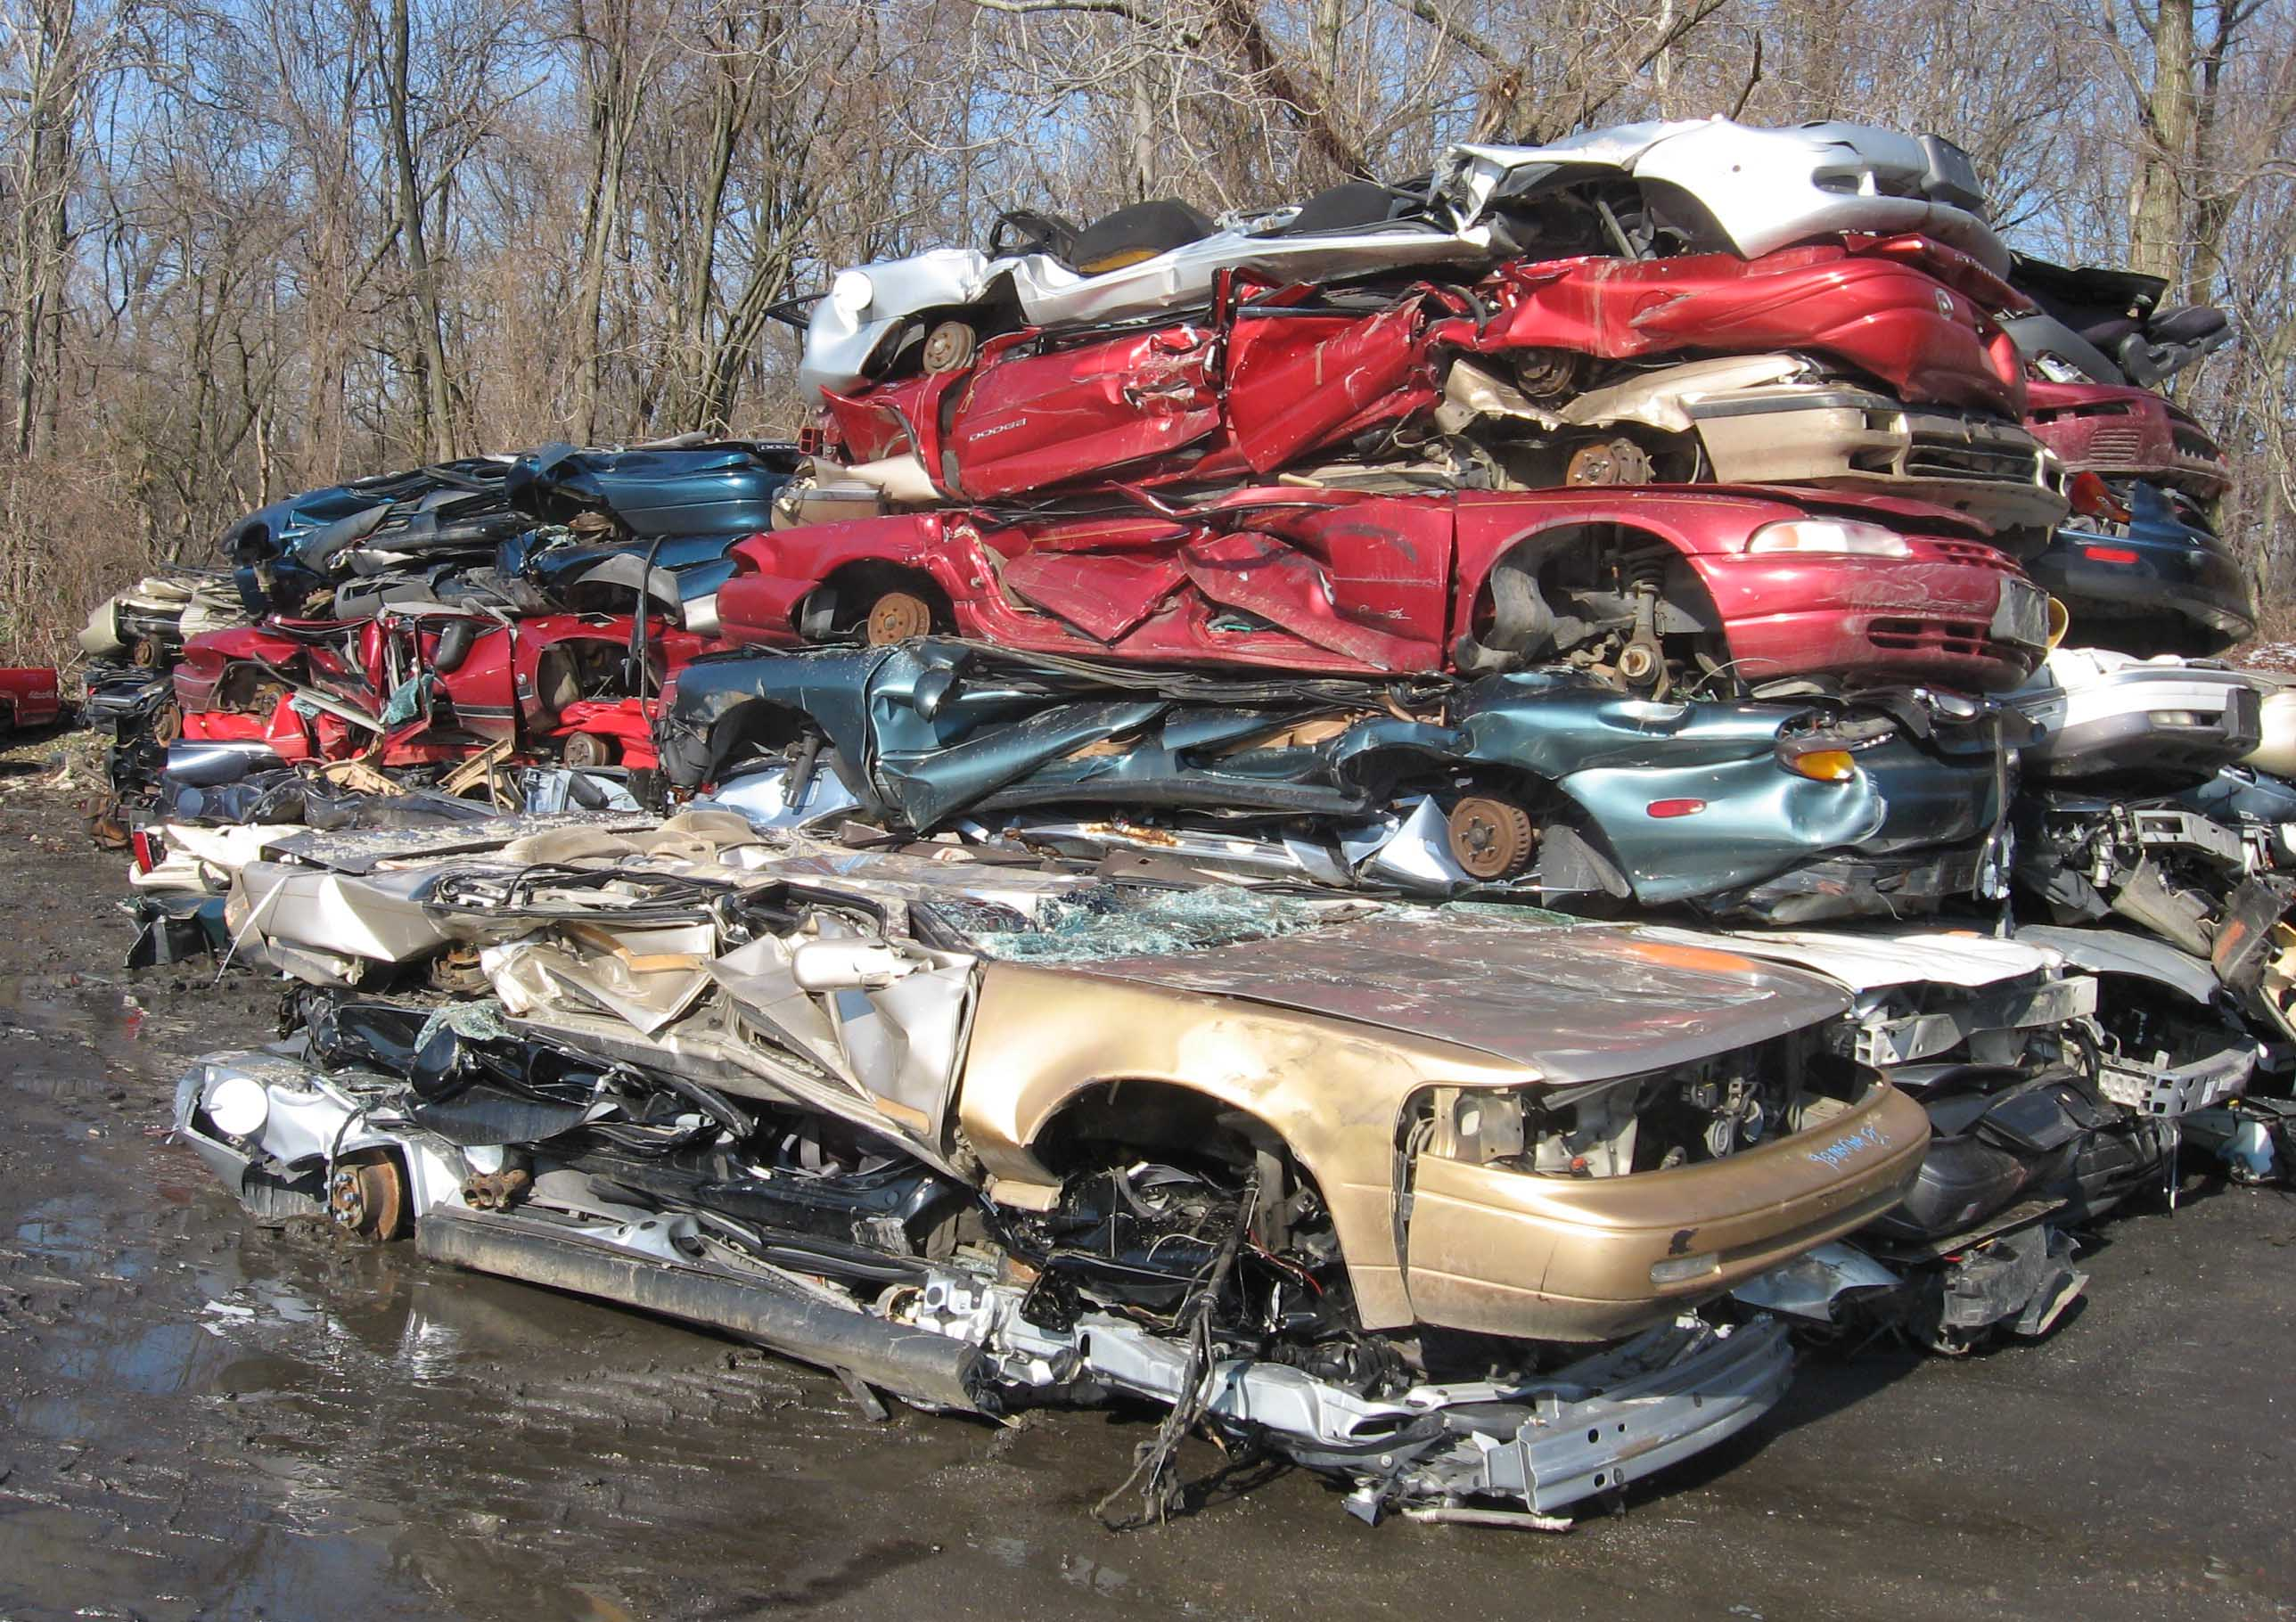 Benefits of damping Scrap Car for Cash – Scientific Revolution